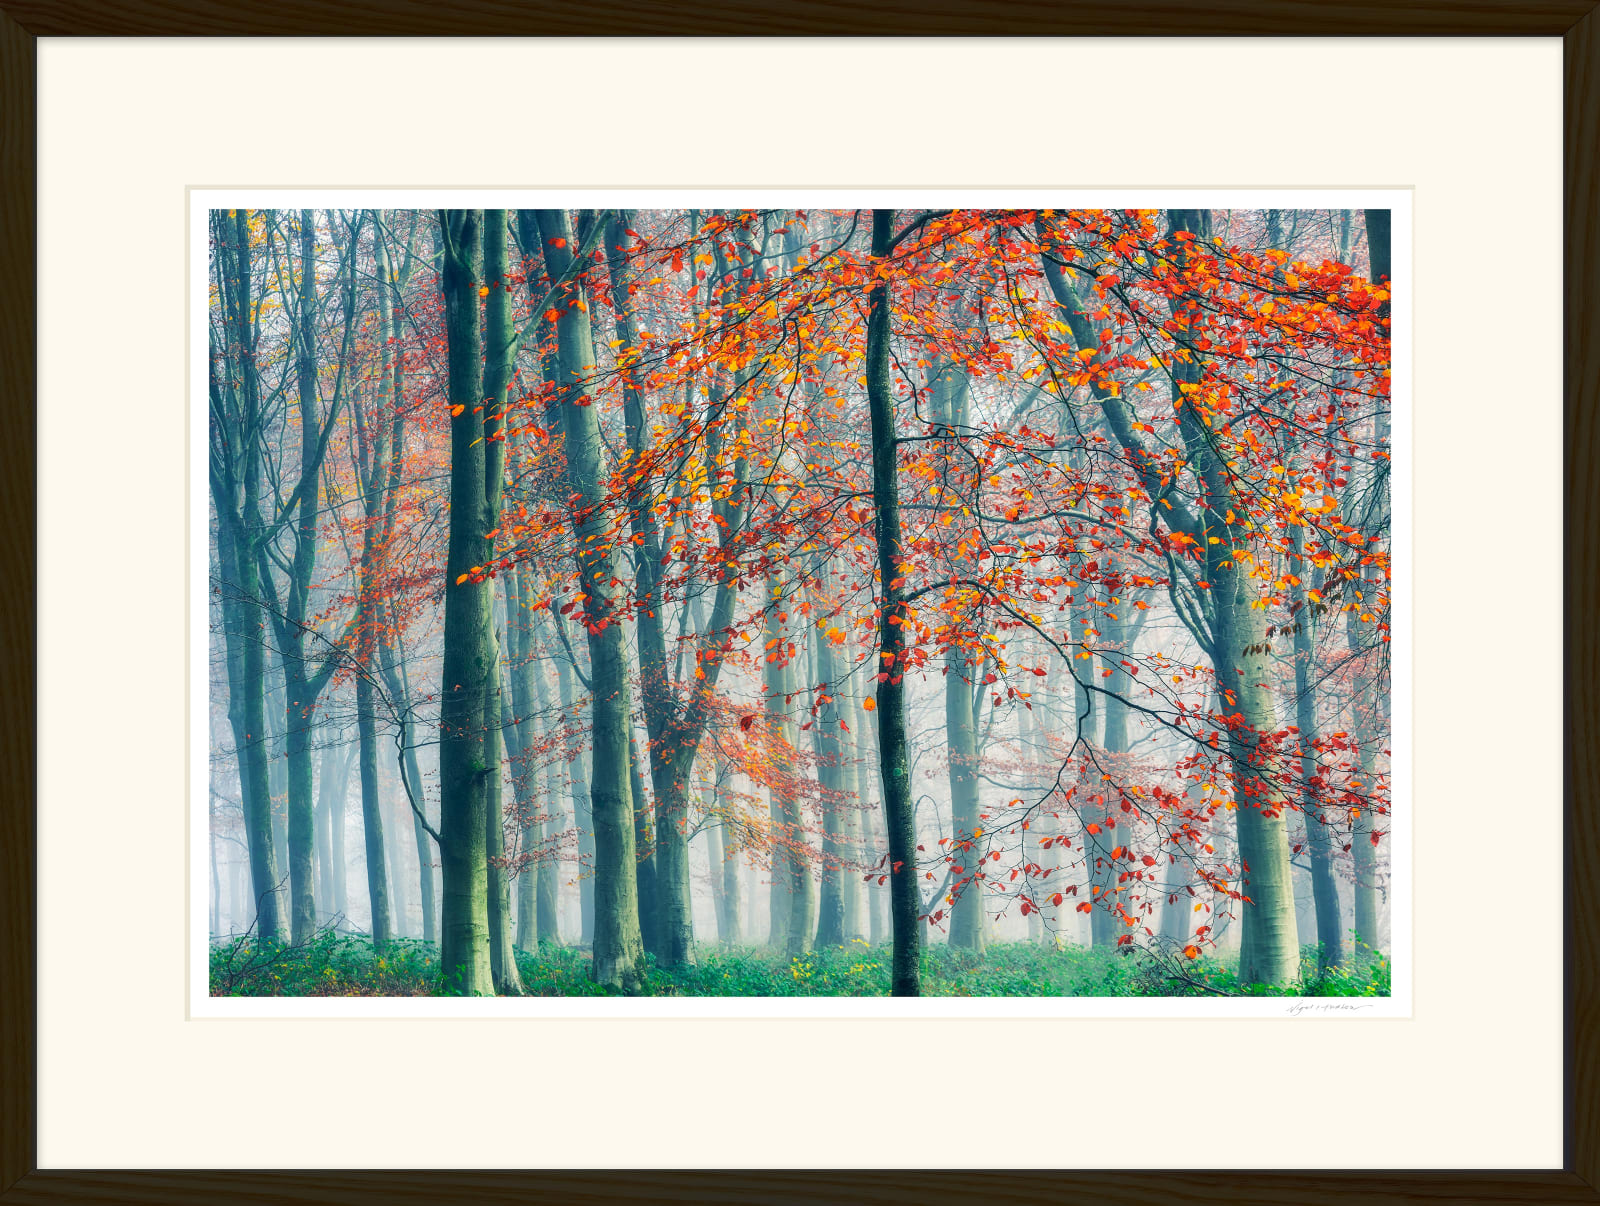 'BEAUTY AND THE BEECH' 16 x 24 inch print within a 22 x 30 inch Frame Printed on Platinum Etching Fine Art Archival Paper Matted and framed in a 2 cm oiled Walnut Cushion Frame under water white glass Signed and Editioned with a Certificate of Authenticity Available in three sizes ... Ready to Hang Prices from £295.00 Price includes delivery by DPD Courier to your front door